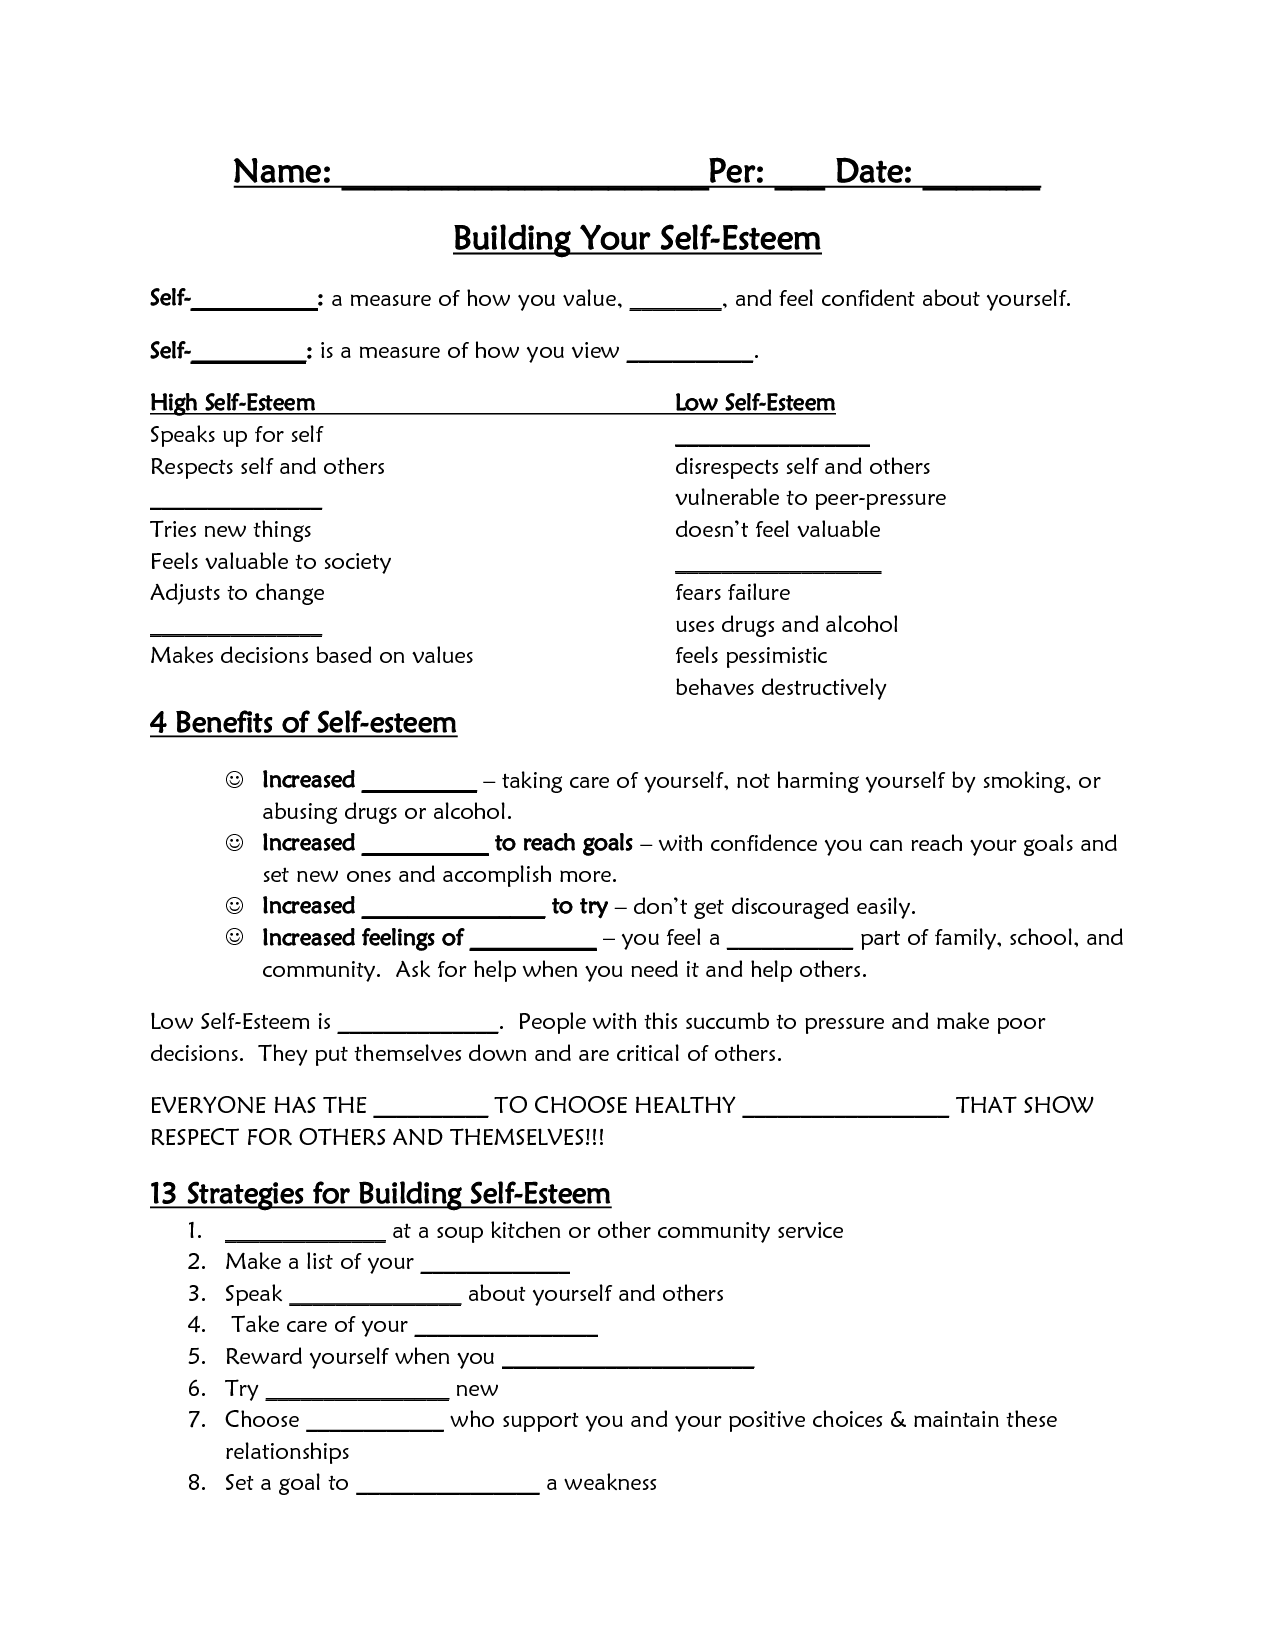 Worksheets Self Esteem Worksheets For Adults self esteem worksheet google search confidence activities search